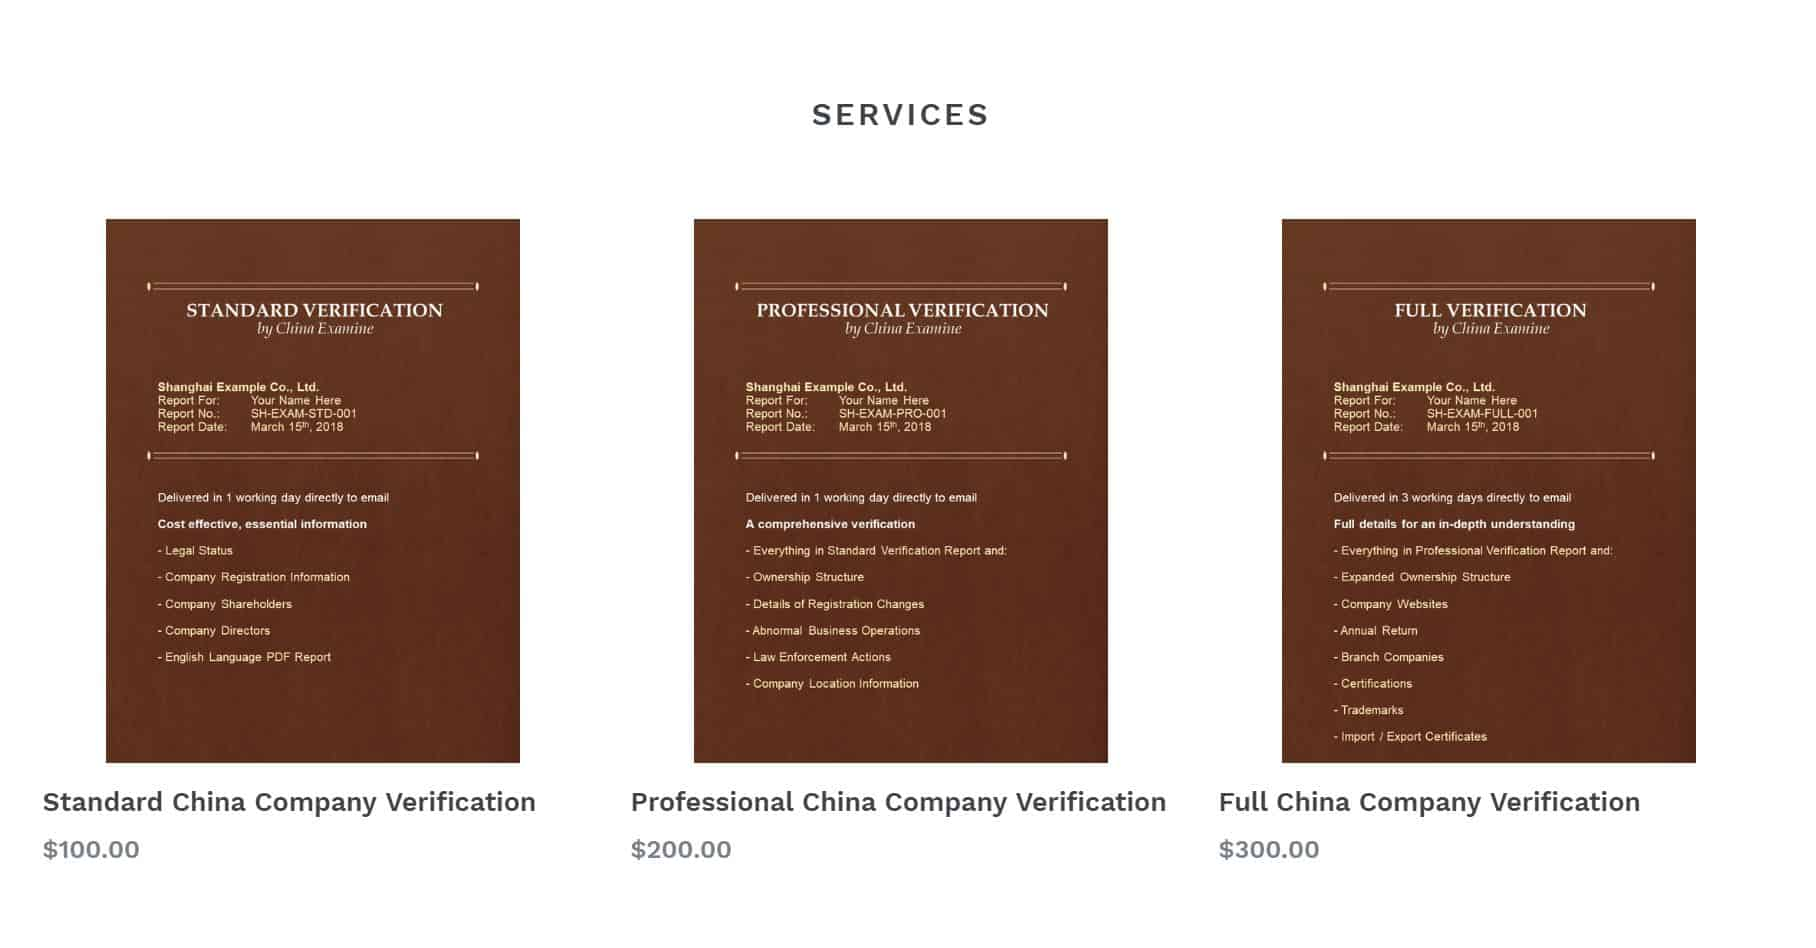 ChinaExamine services